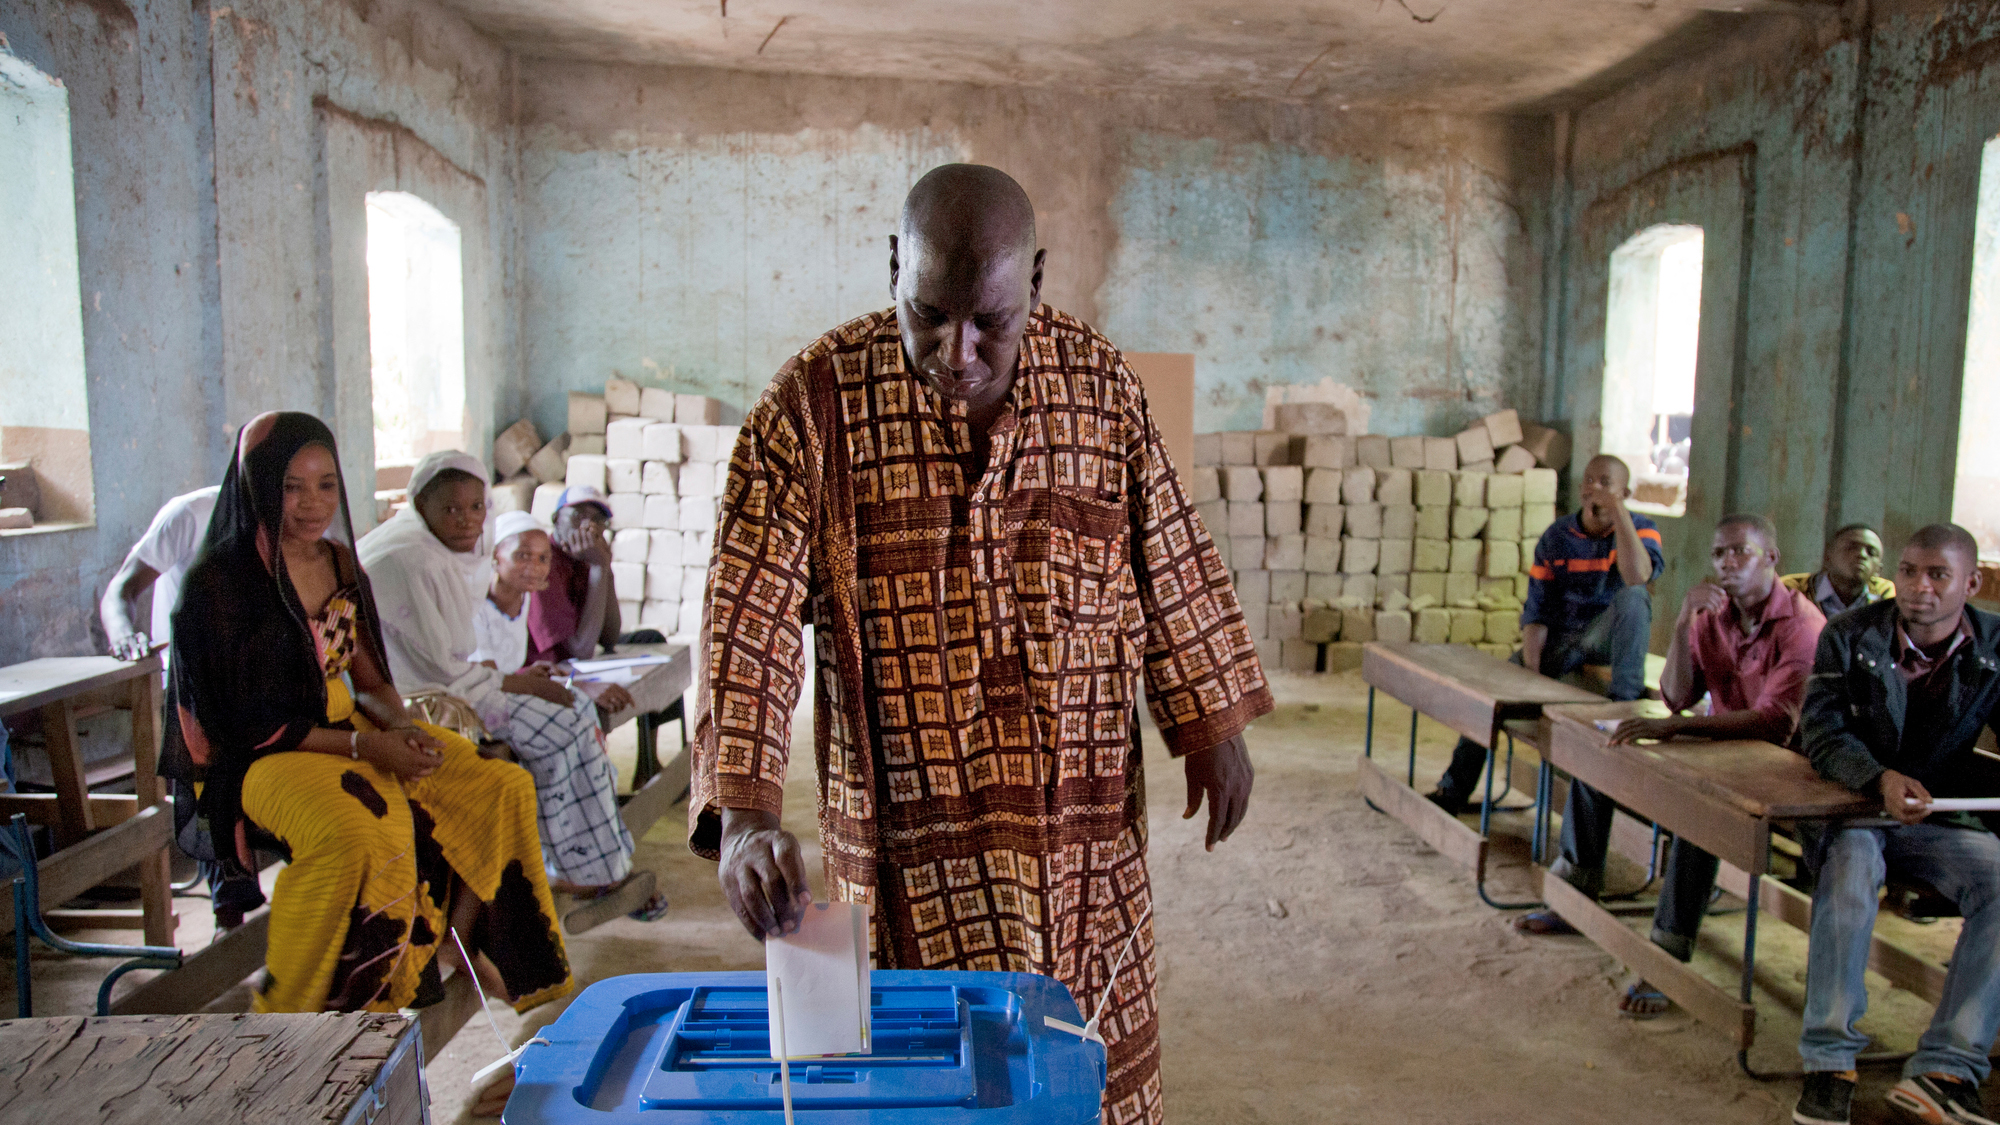 A man voting at a polling station in Mali in 2013.